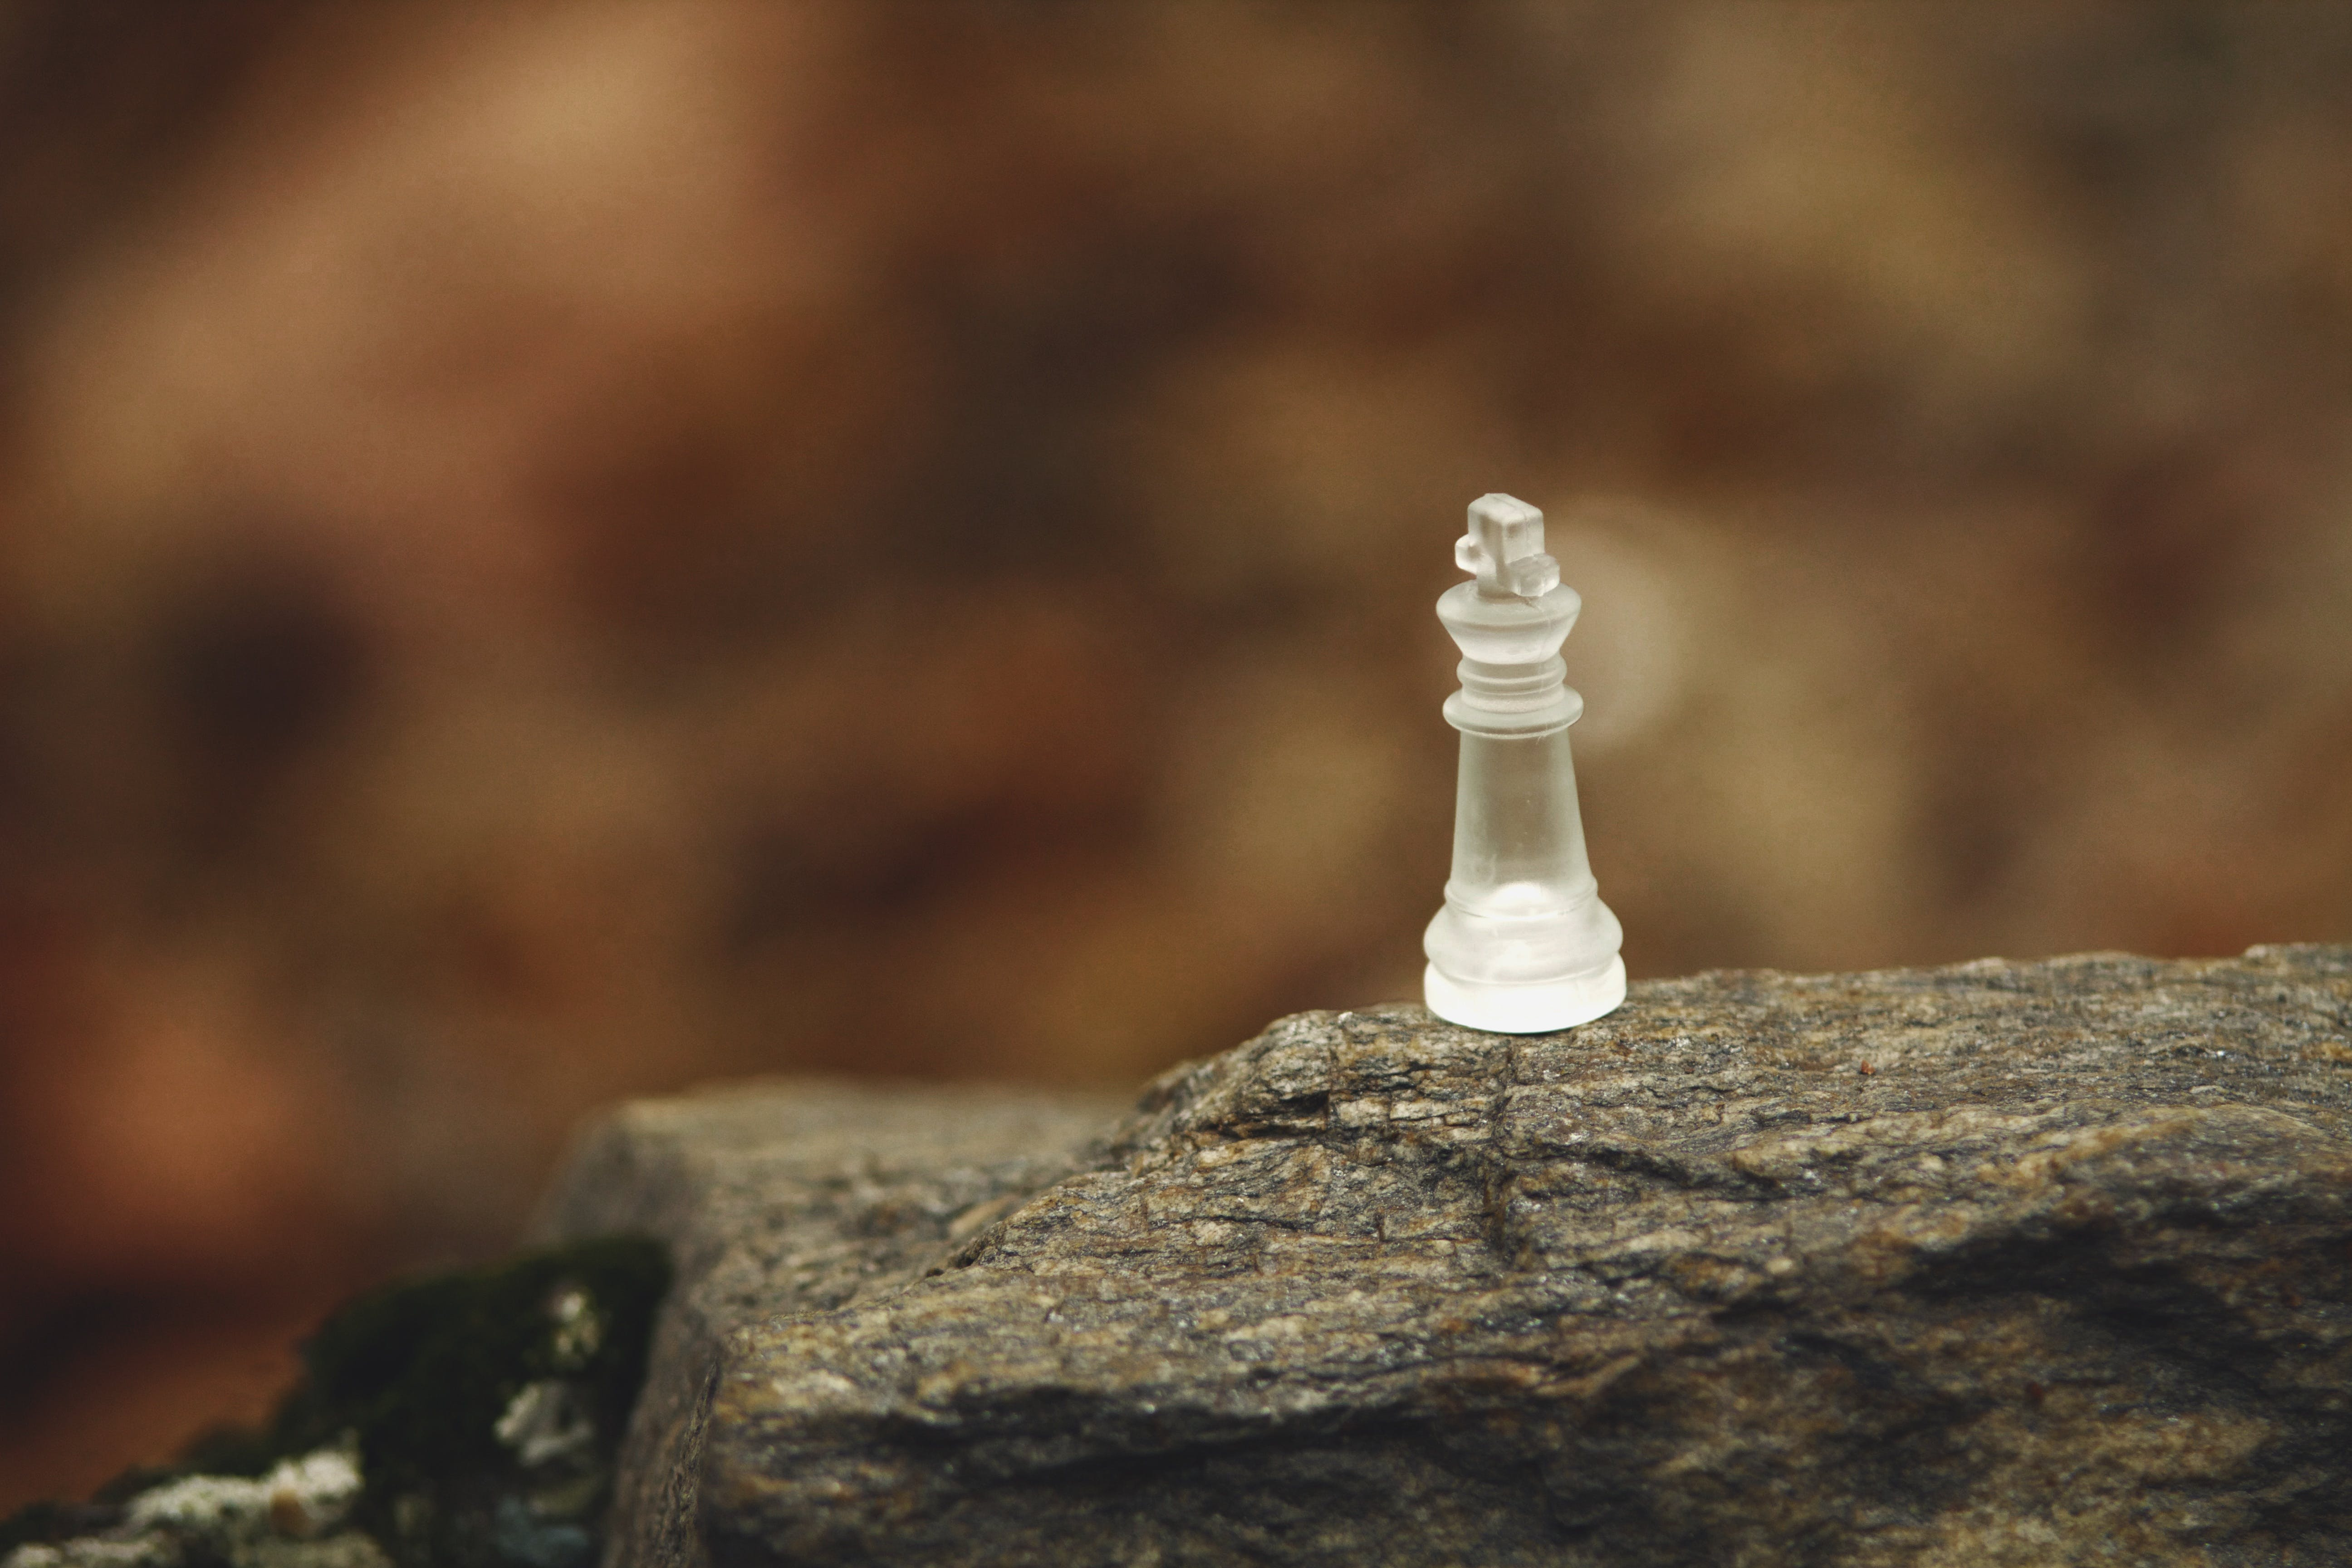 Frosted Glass Bishop Chess Piece on Rock